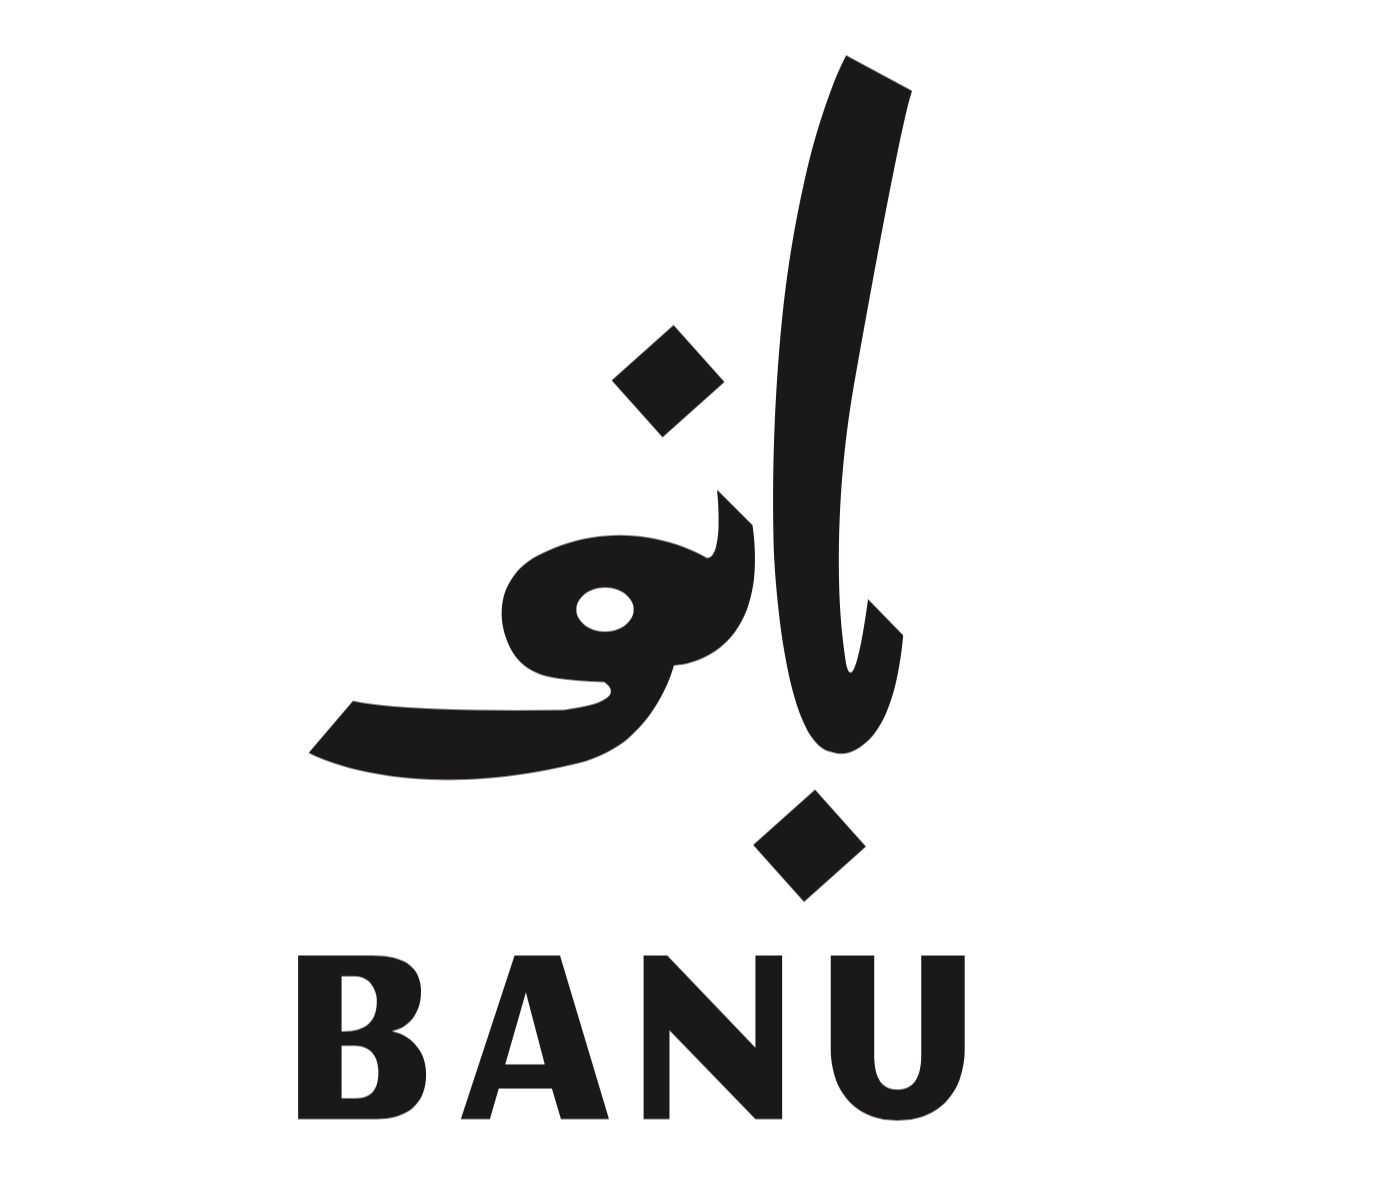 Banu Iranian Eatery and Commissary